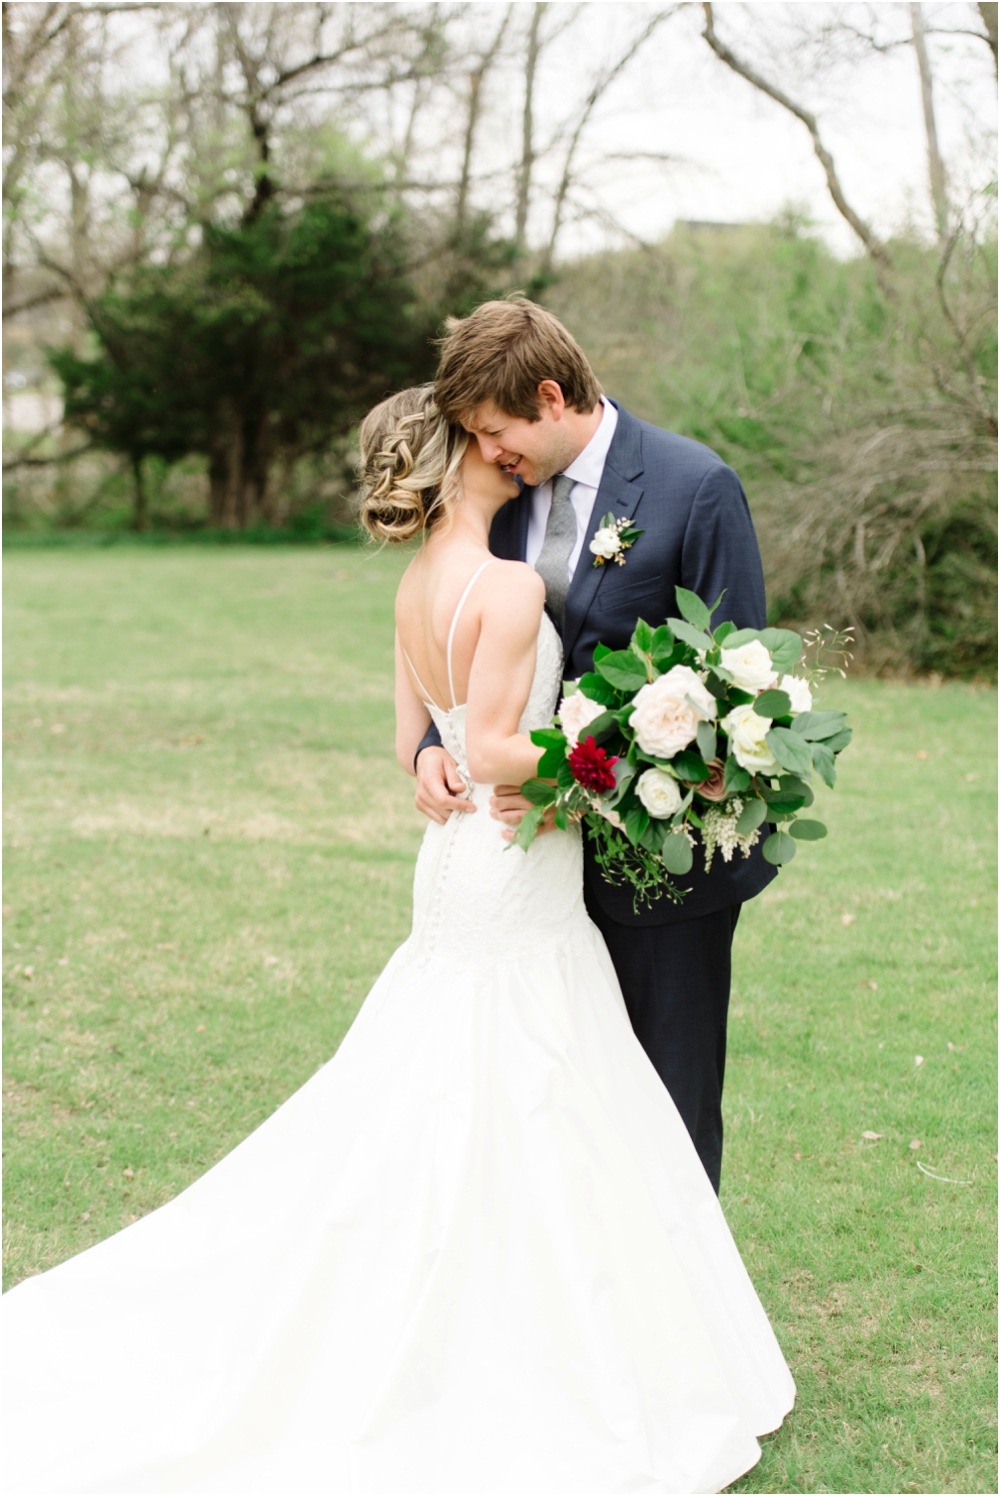 dallasweddingphotographer_texasweddingphotographer_texasweddingphotographers_dallasweddingphotographer_mattandjulieweddings_0671.jpg